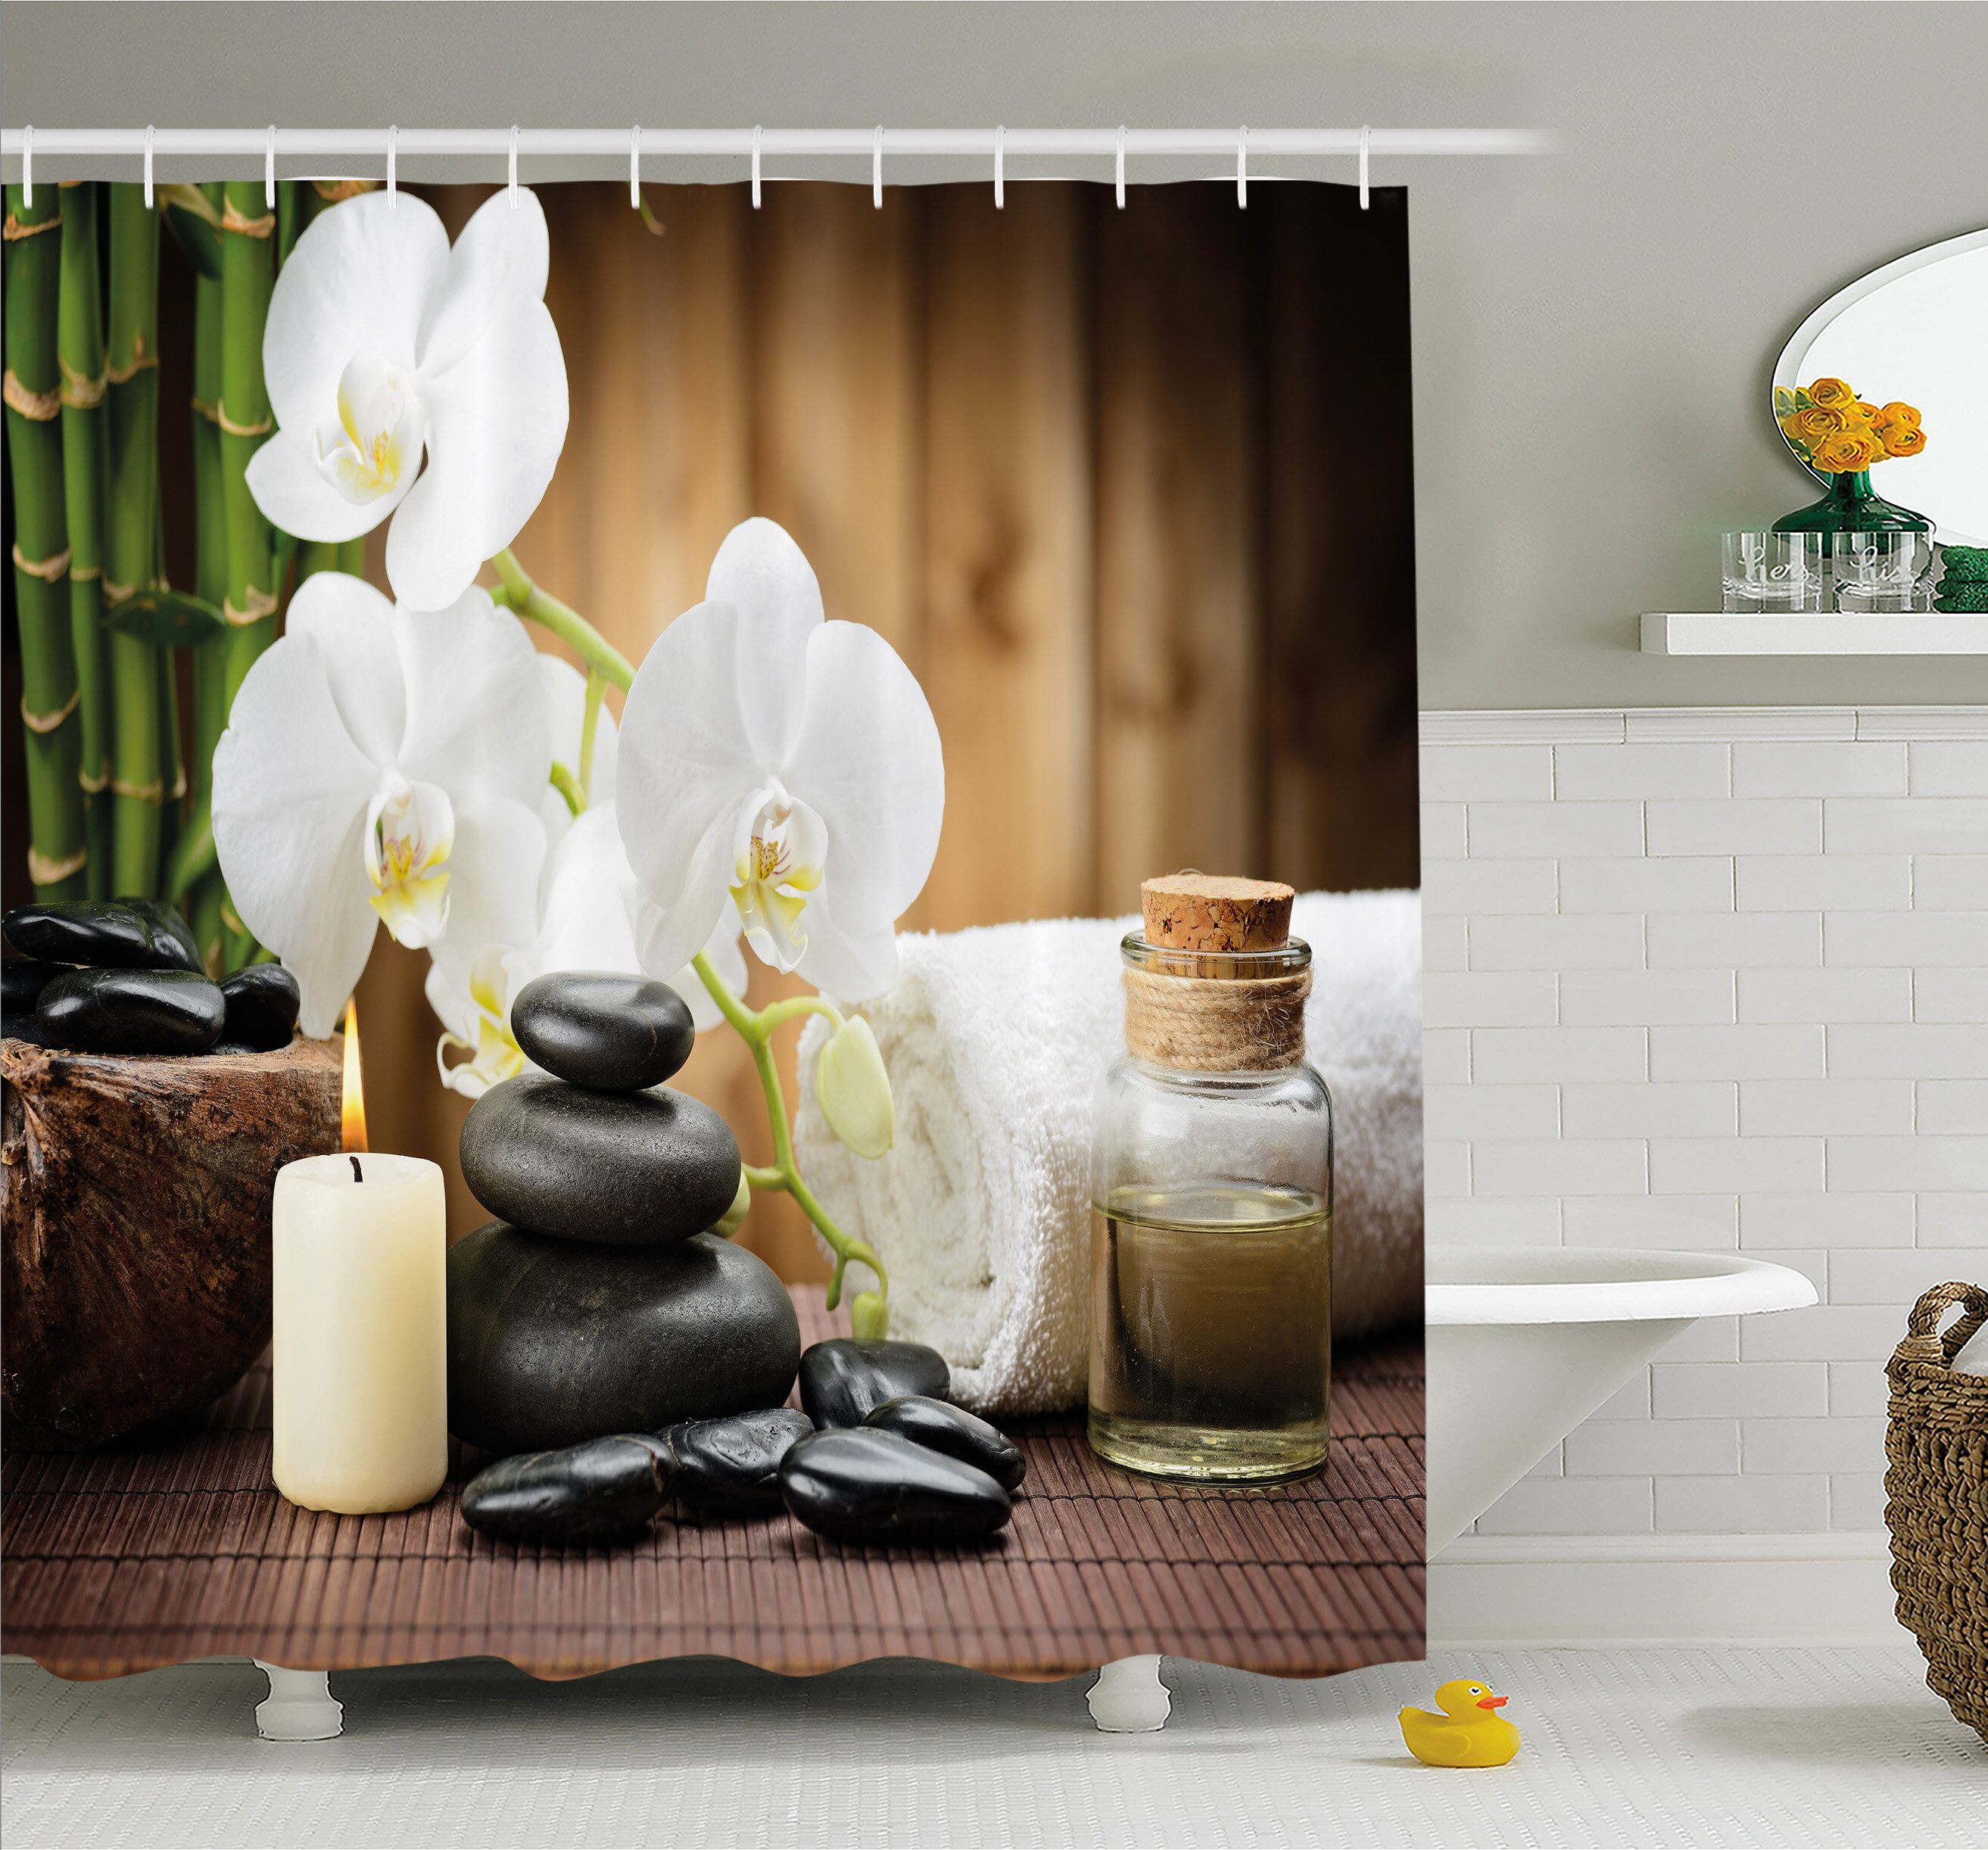 East Urban Home Spa Asian Style Decoration With Zen Stones Candle